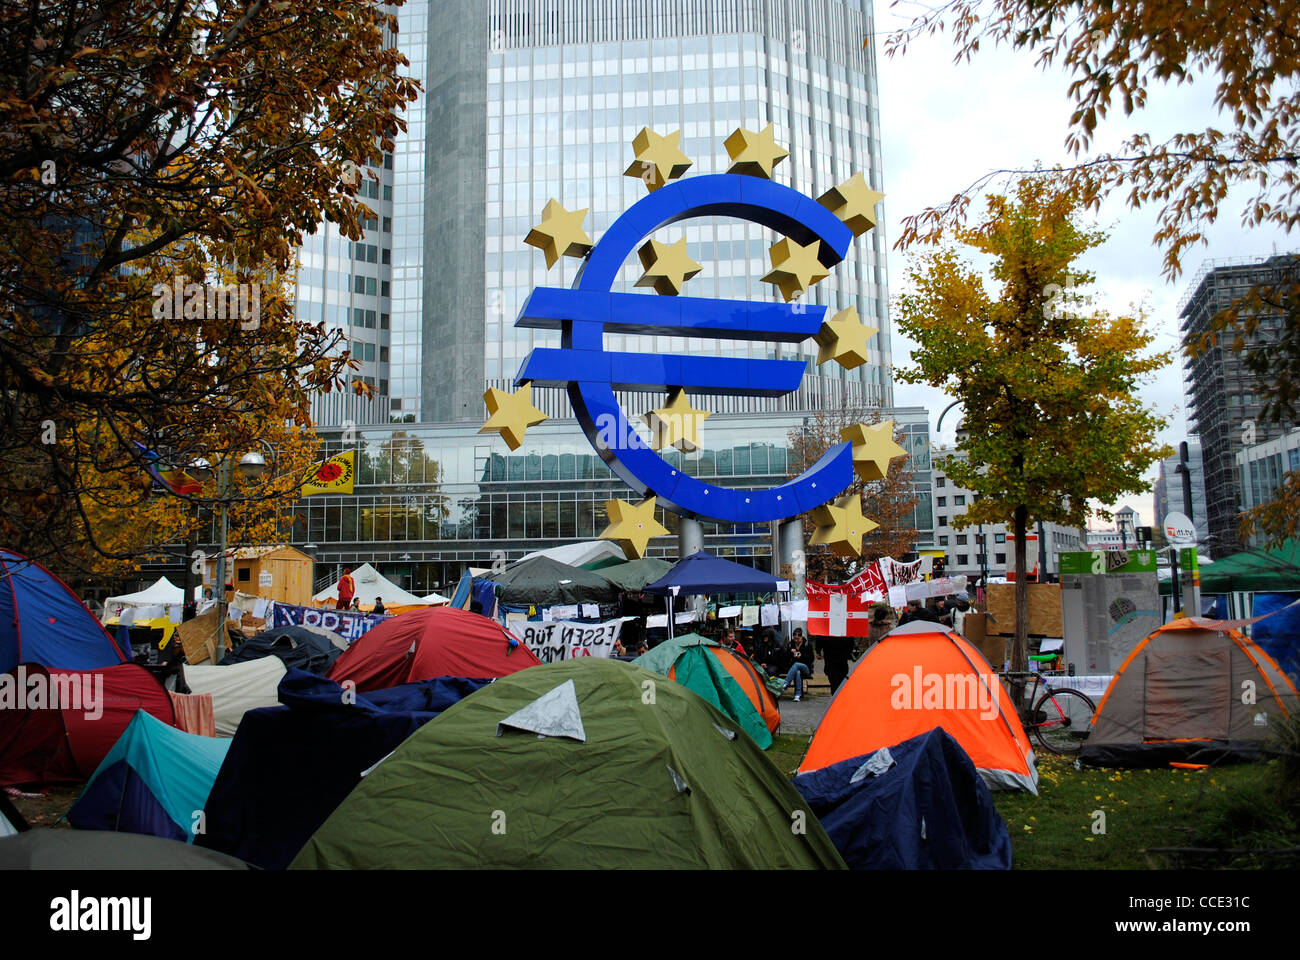 Ocupar Frankfurt camp fuera del Banco Central Europeo, Alemania Foto de stock